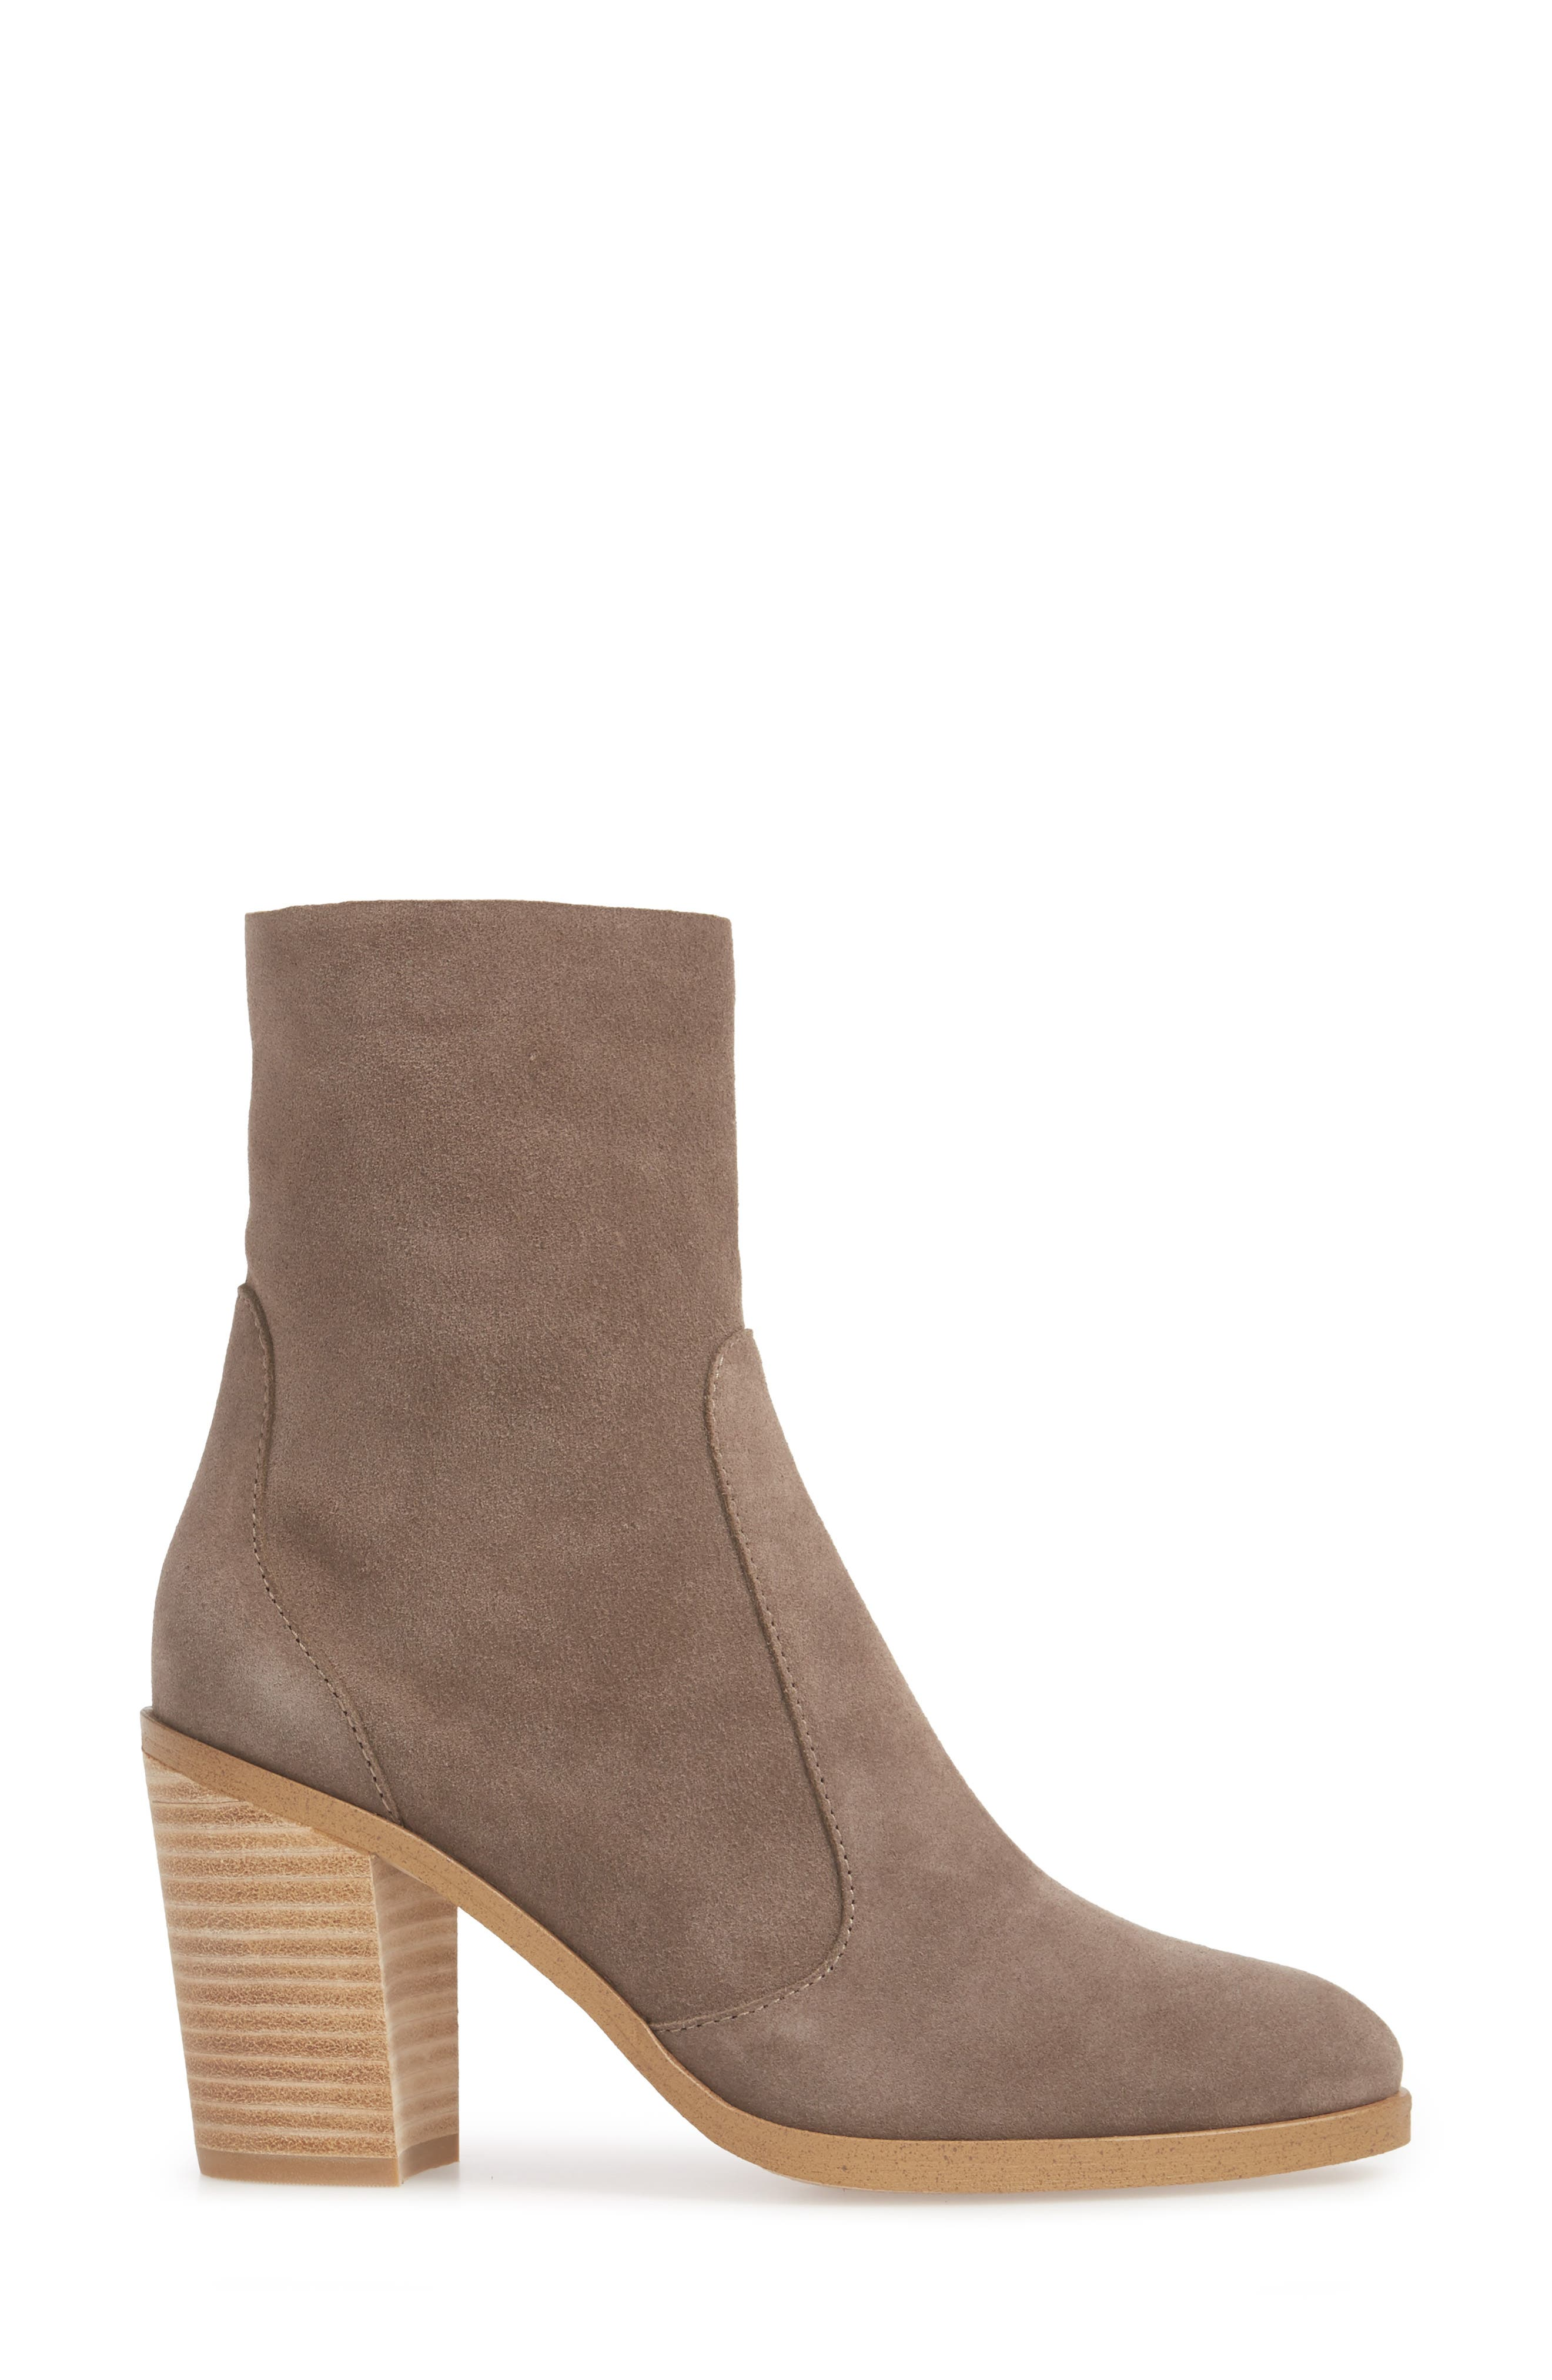 Roselyn II Almond Toe Bootie,                             Alternate thumbnail 3, color,                             029